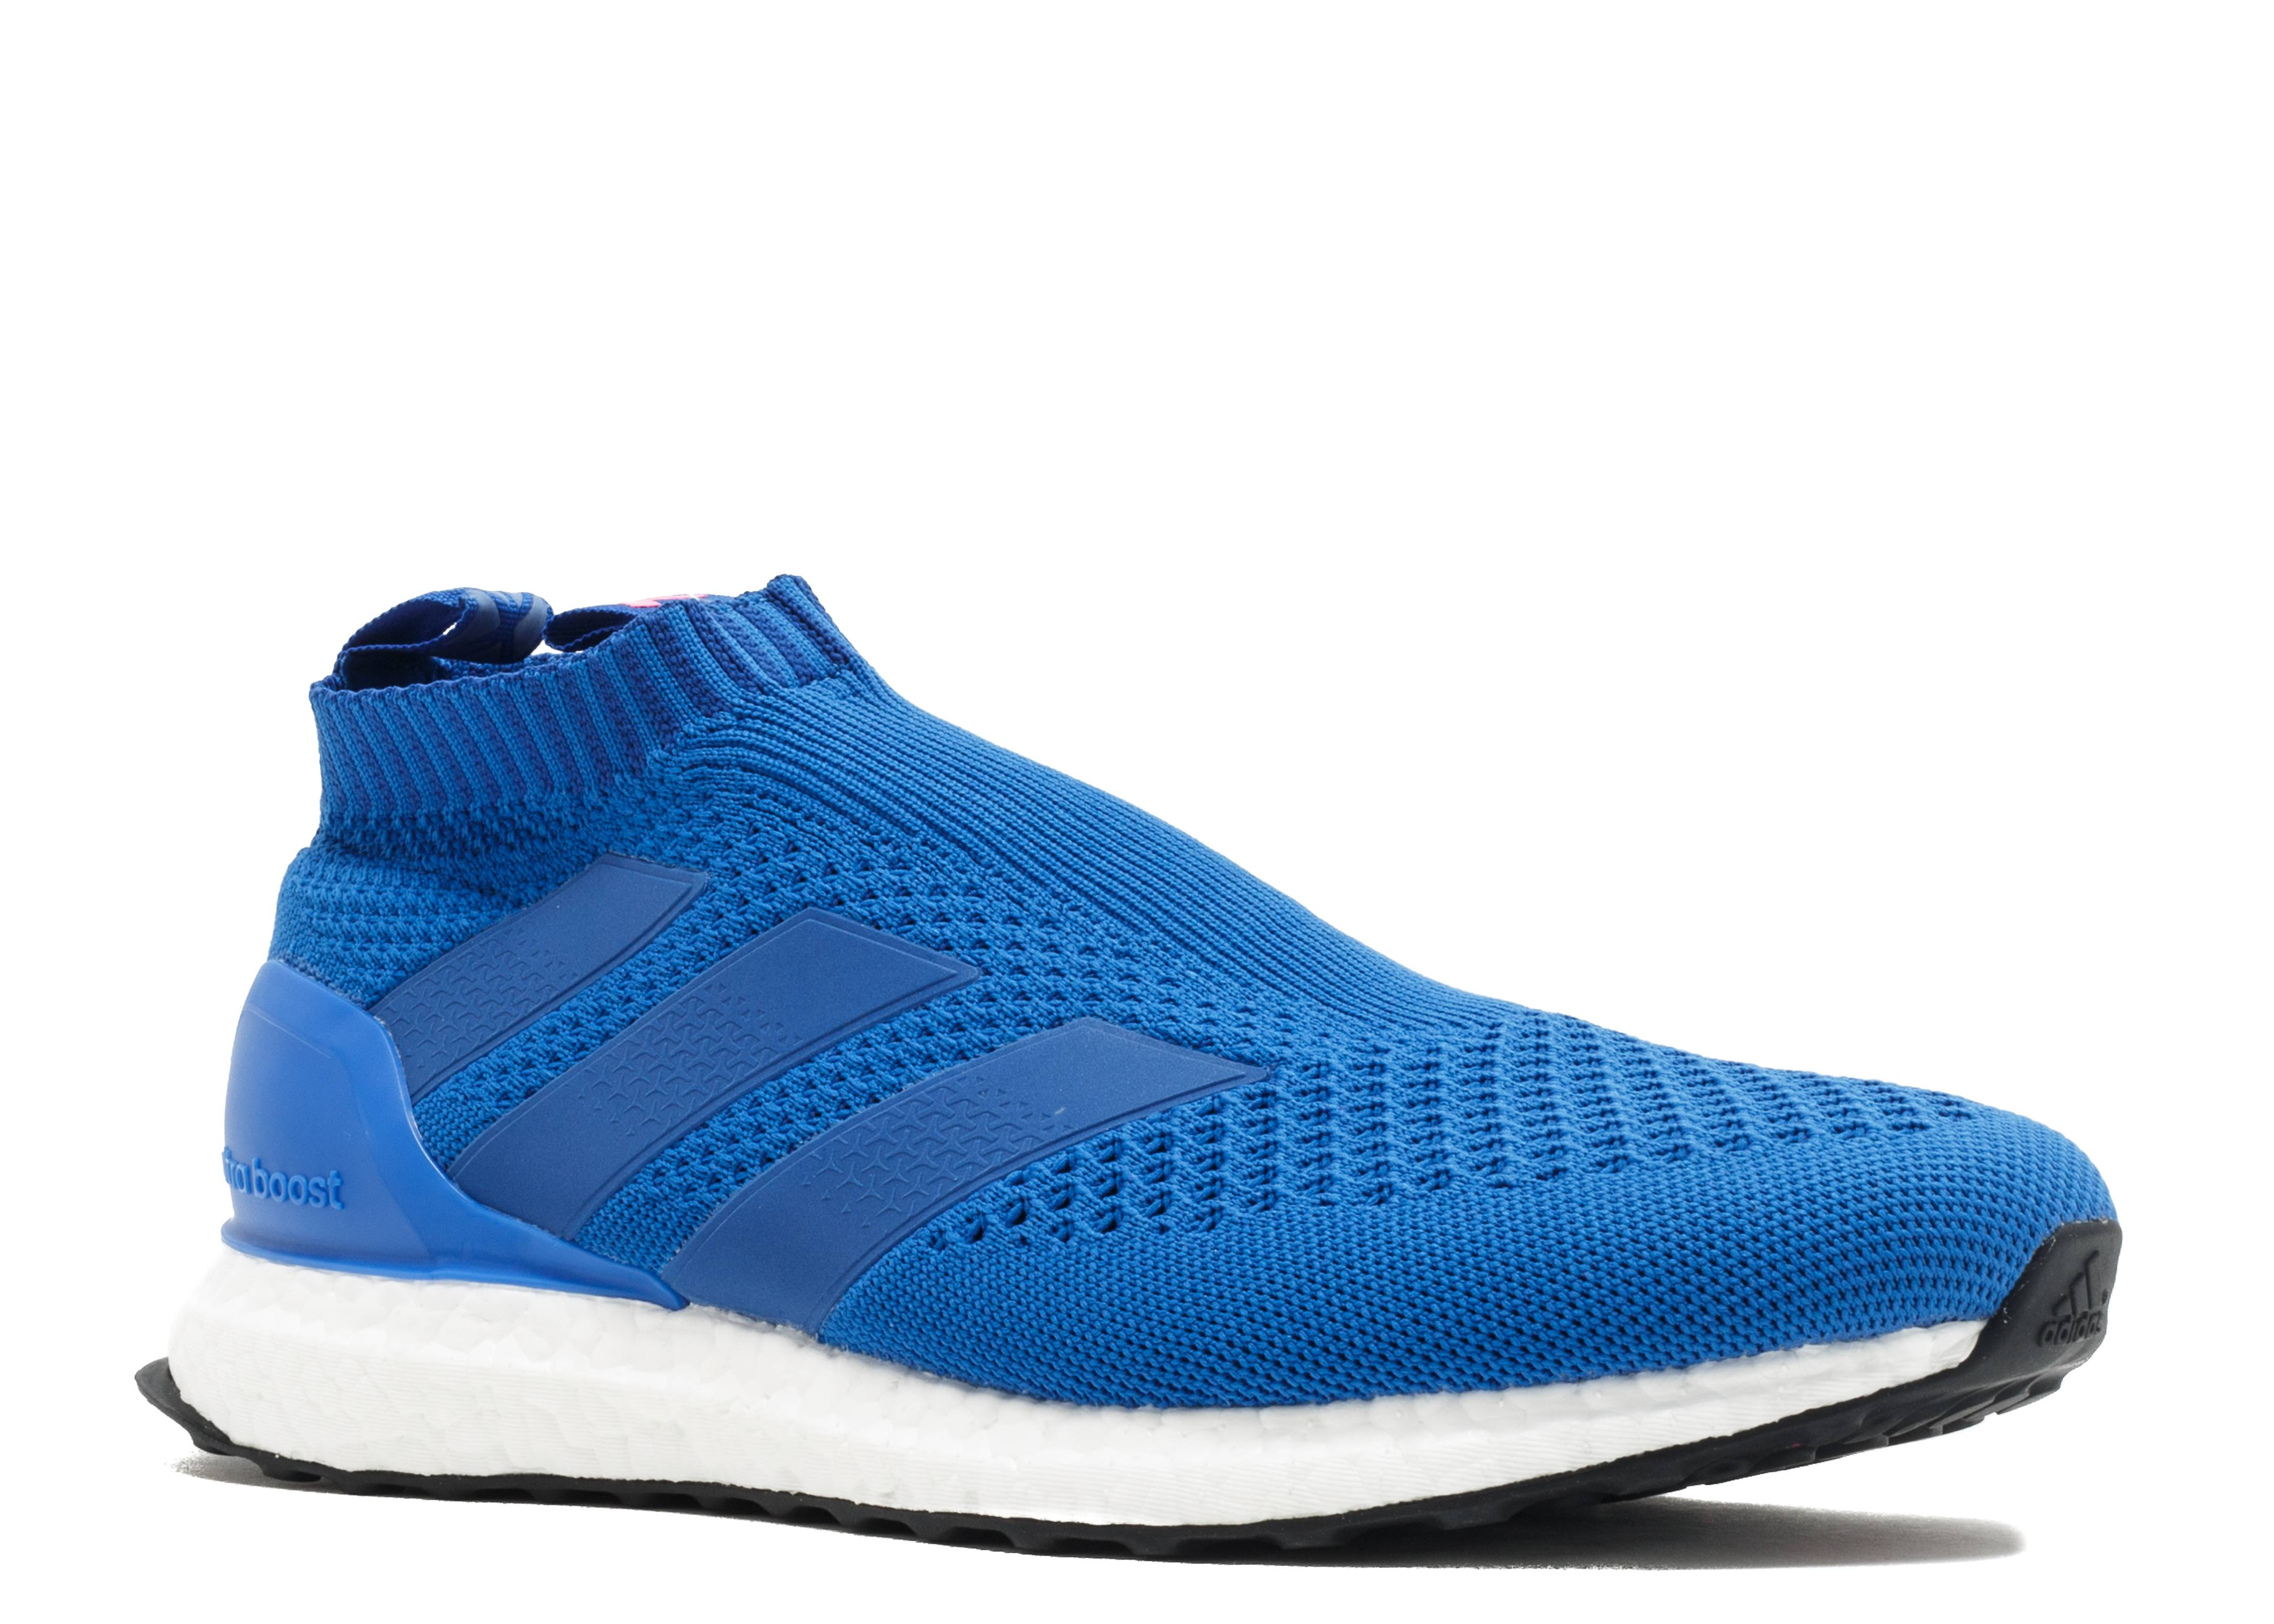 ADIDAS ACE 16+ Purecontrol Ultra Boost Blue Sz 9.5 By9090